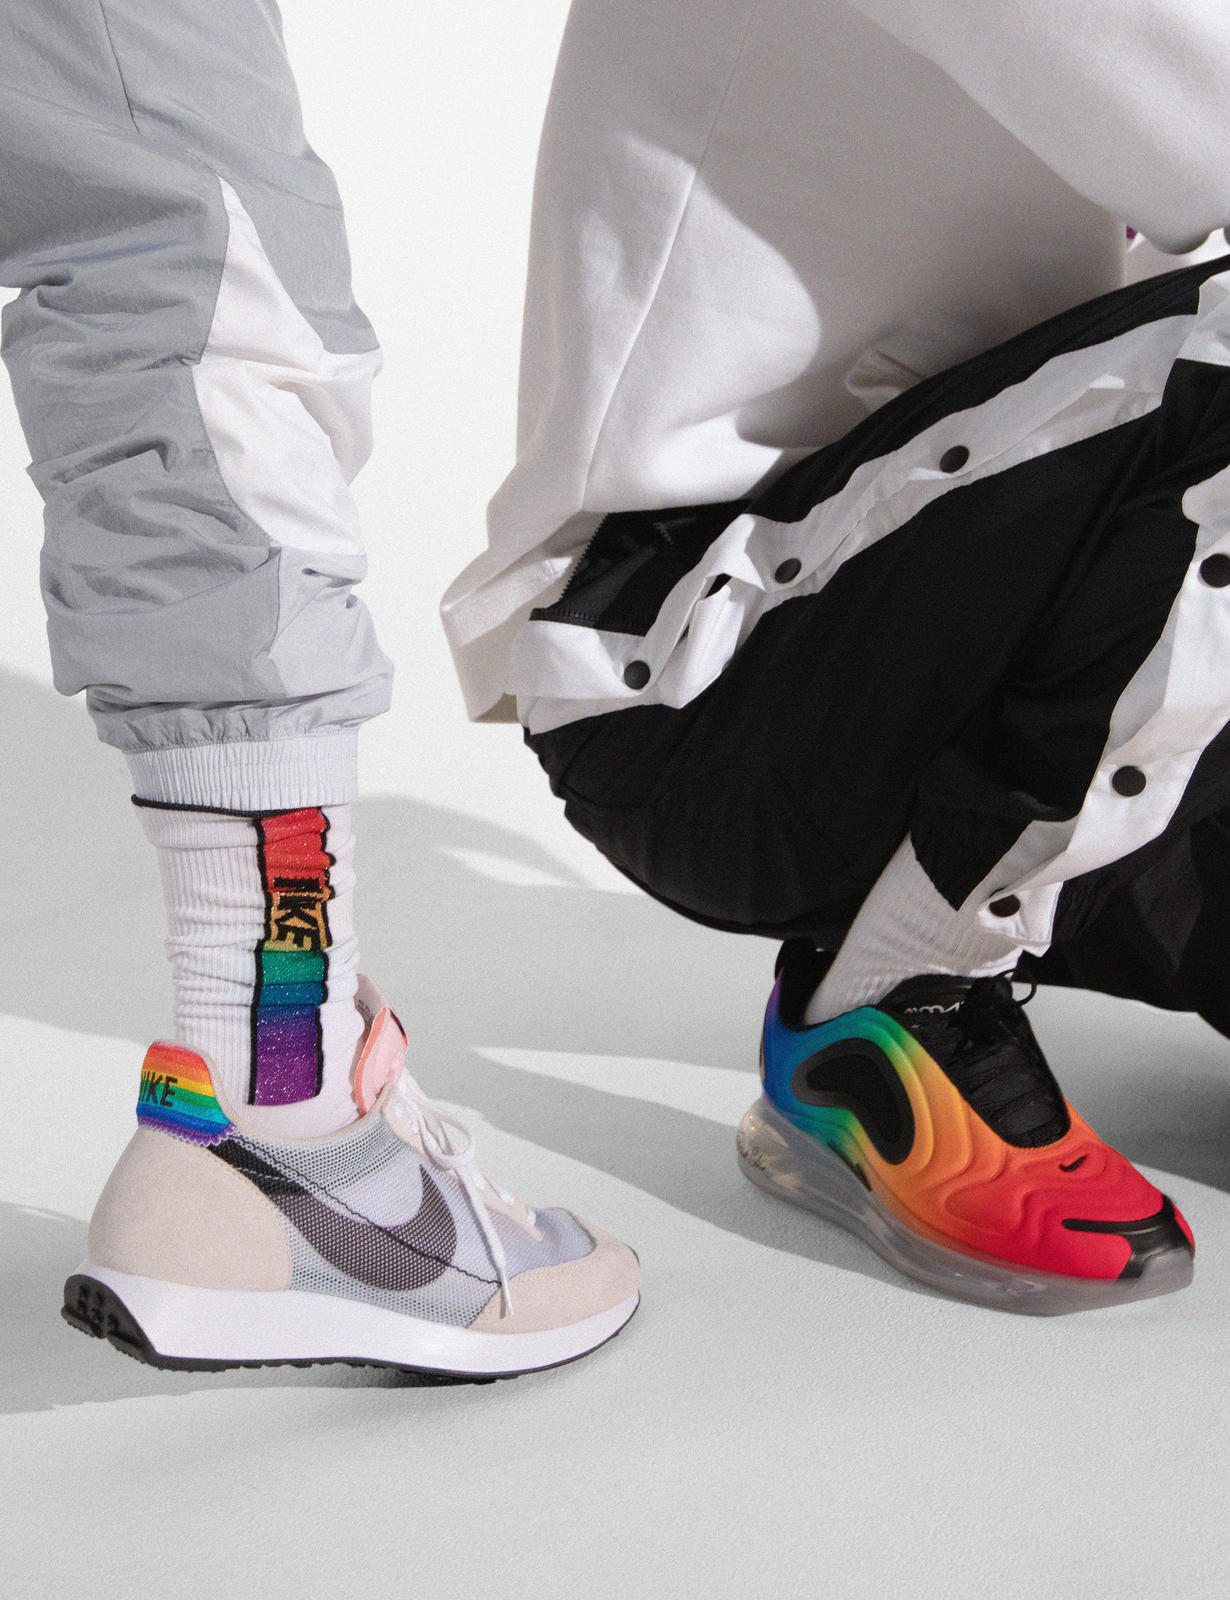 Nike-BETRUE-2019-Collection-21_88116